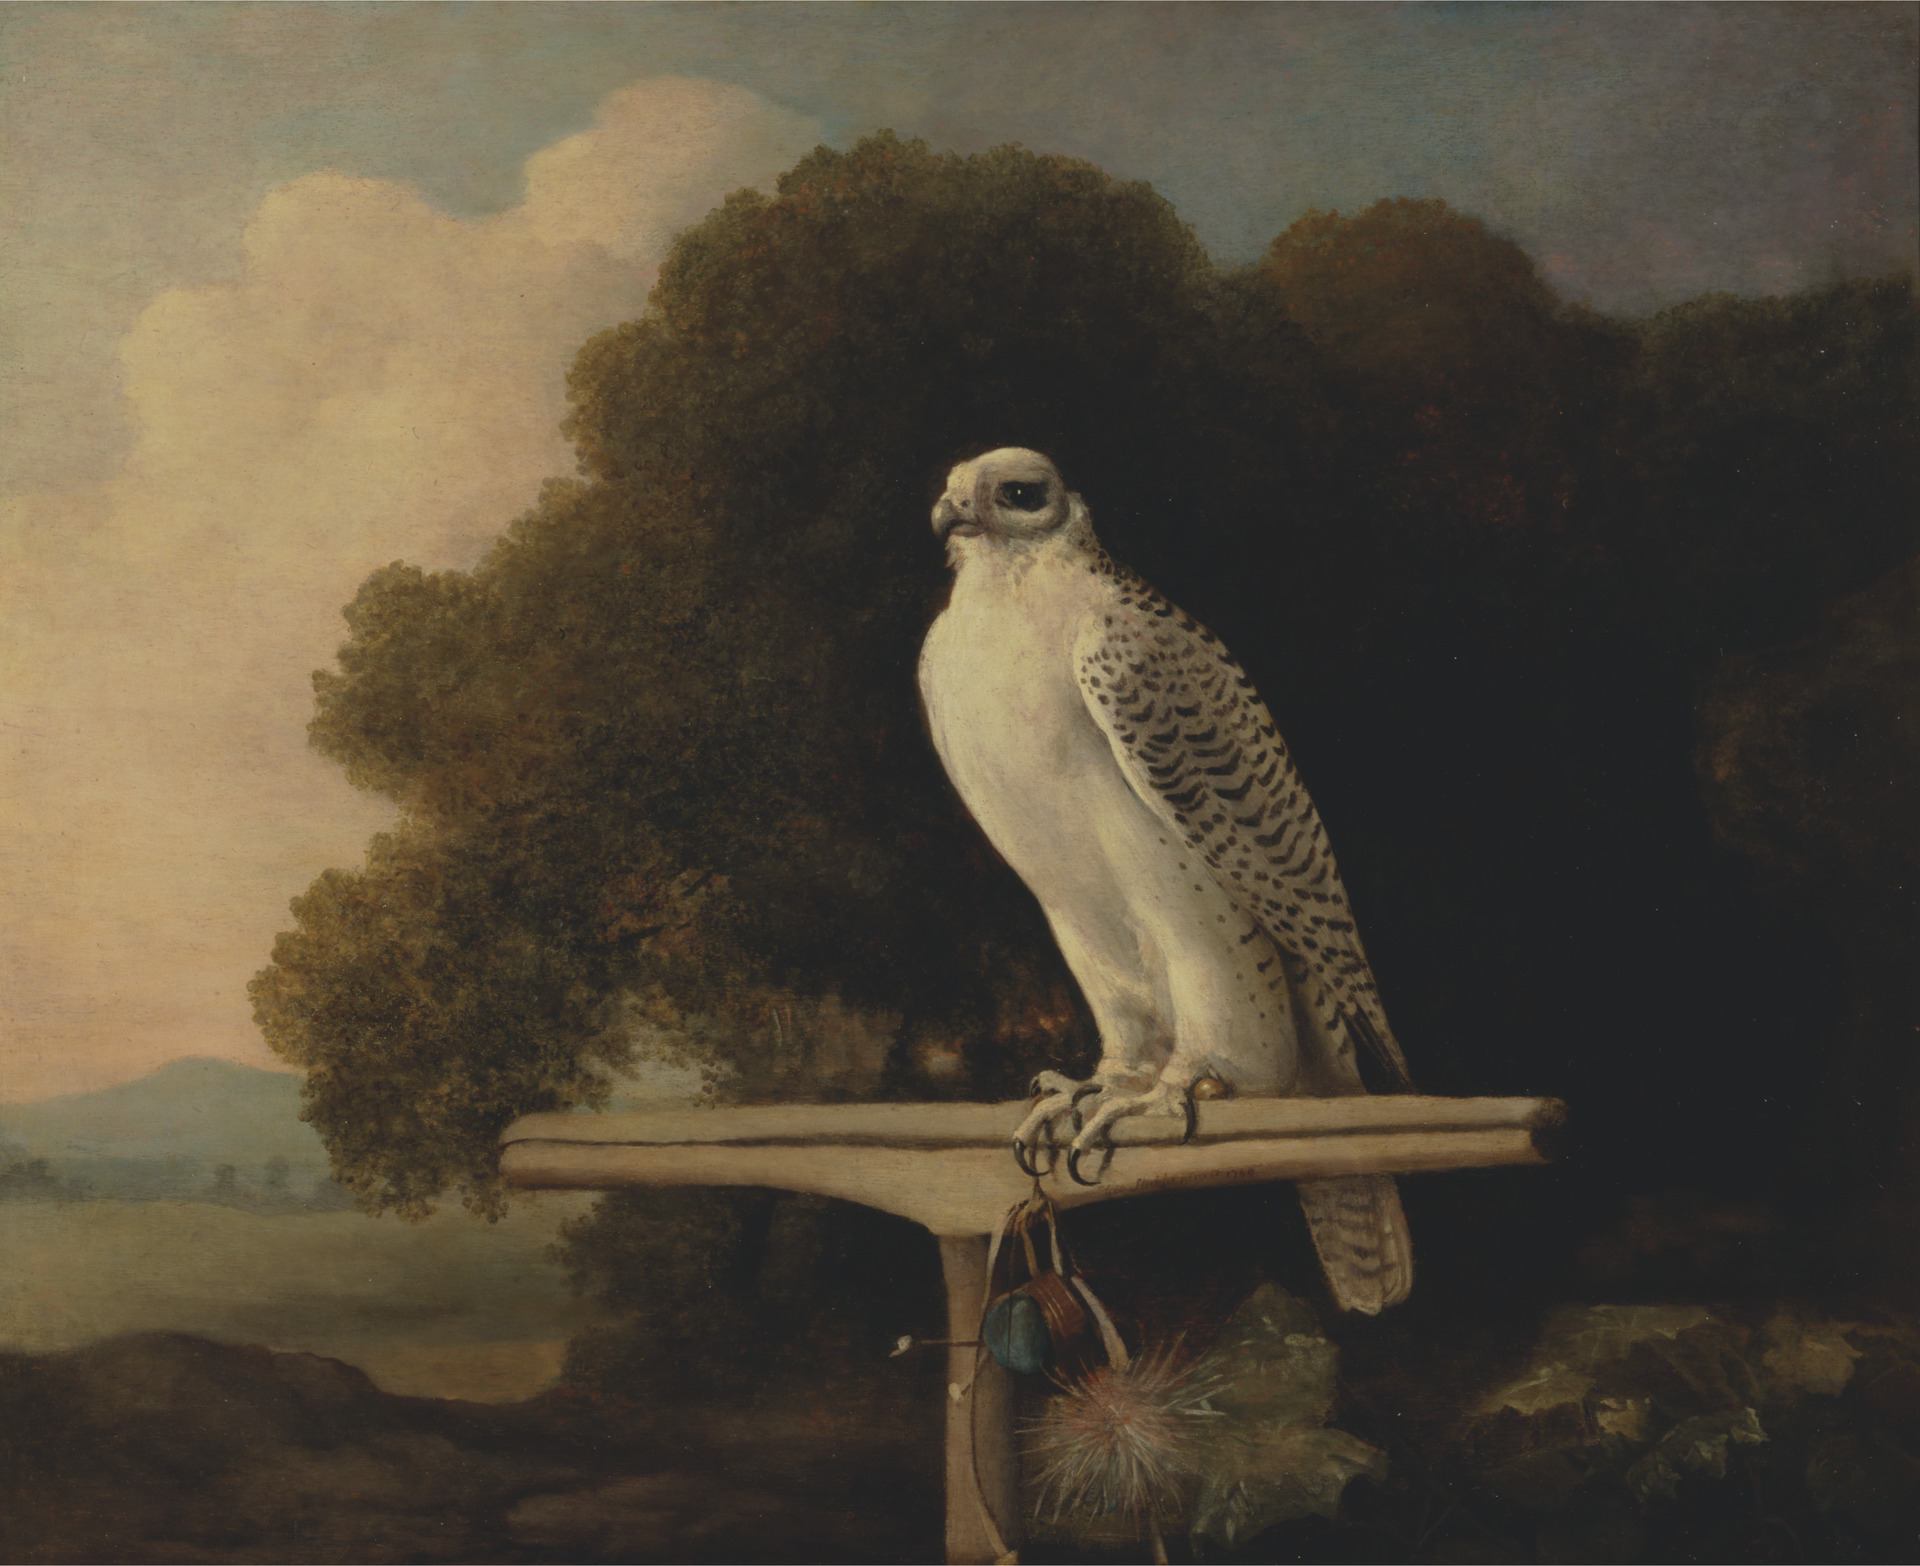 Greenland Falcon, George Stubbs, 1780